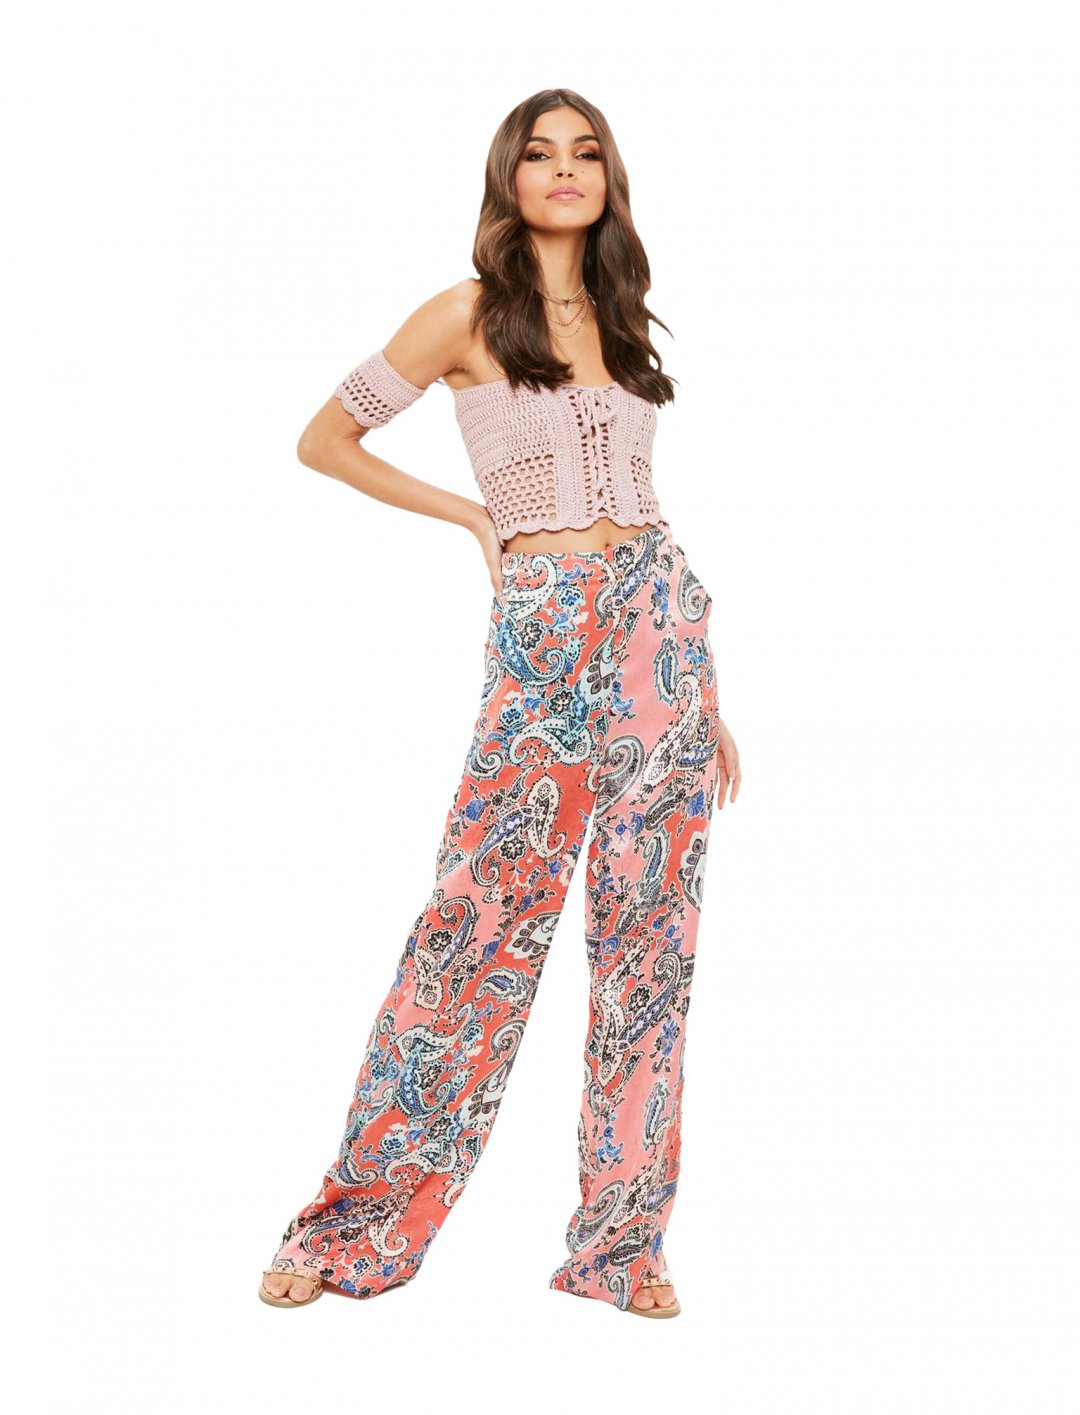 Missguised Printed Trousers Clothing Missguided